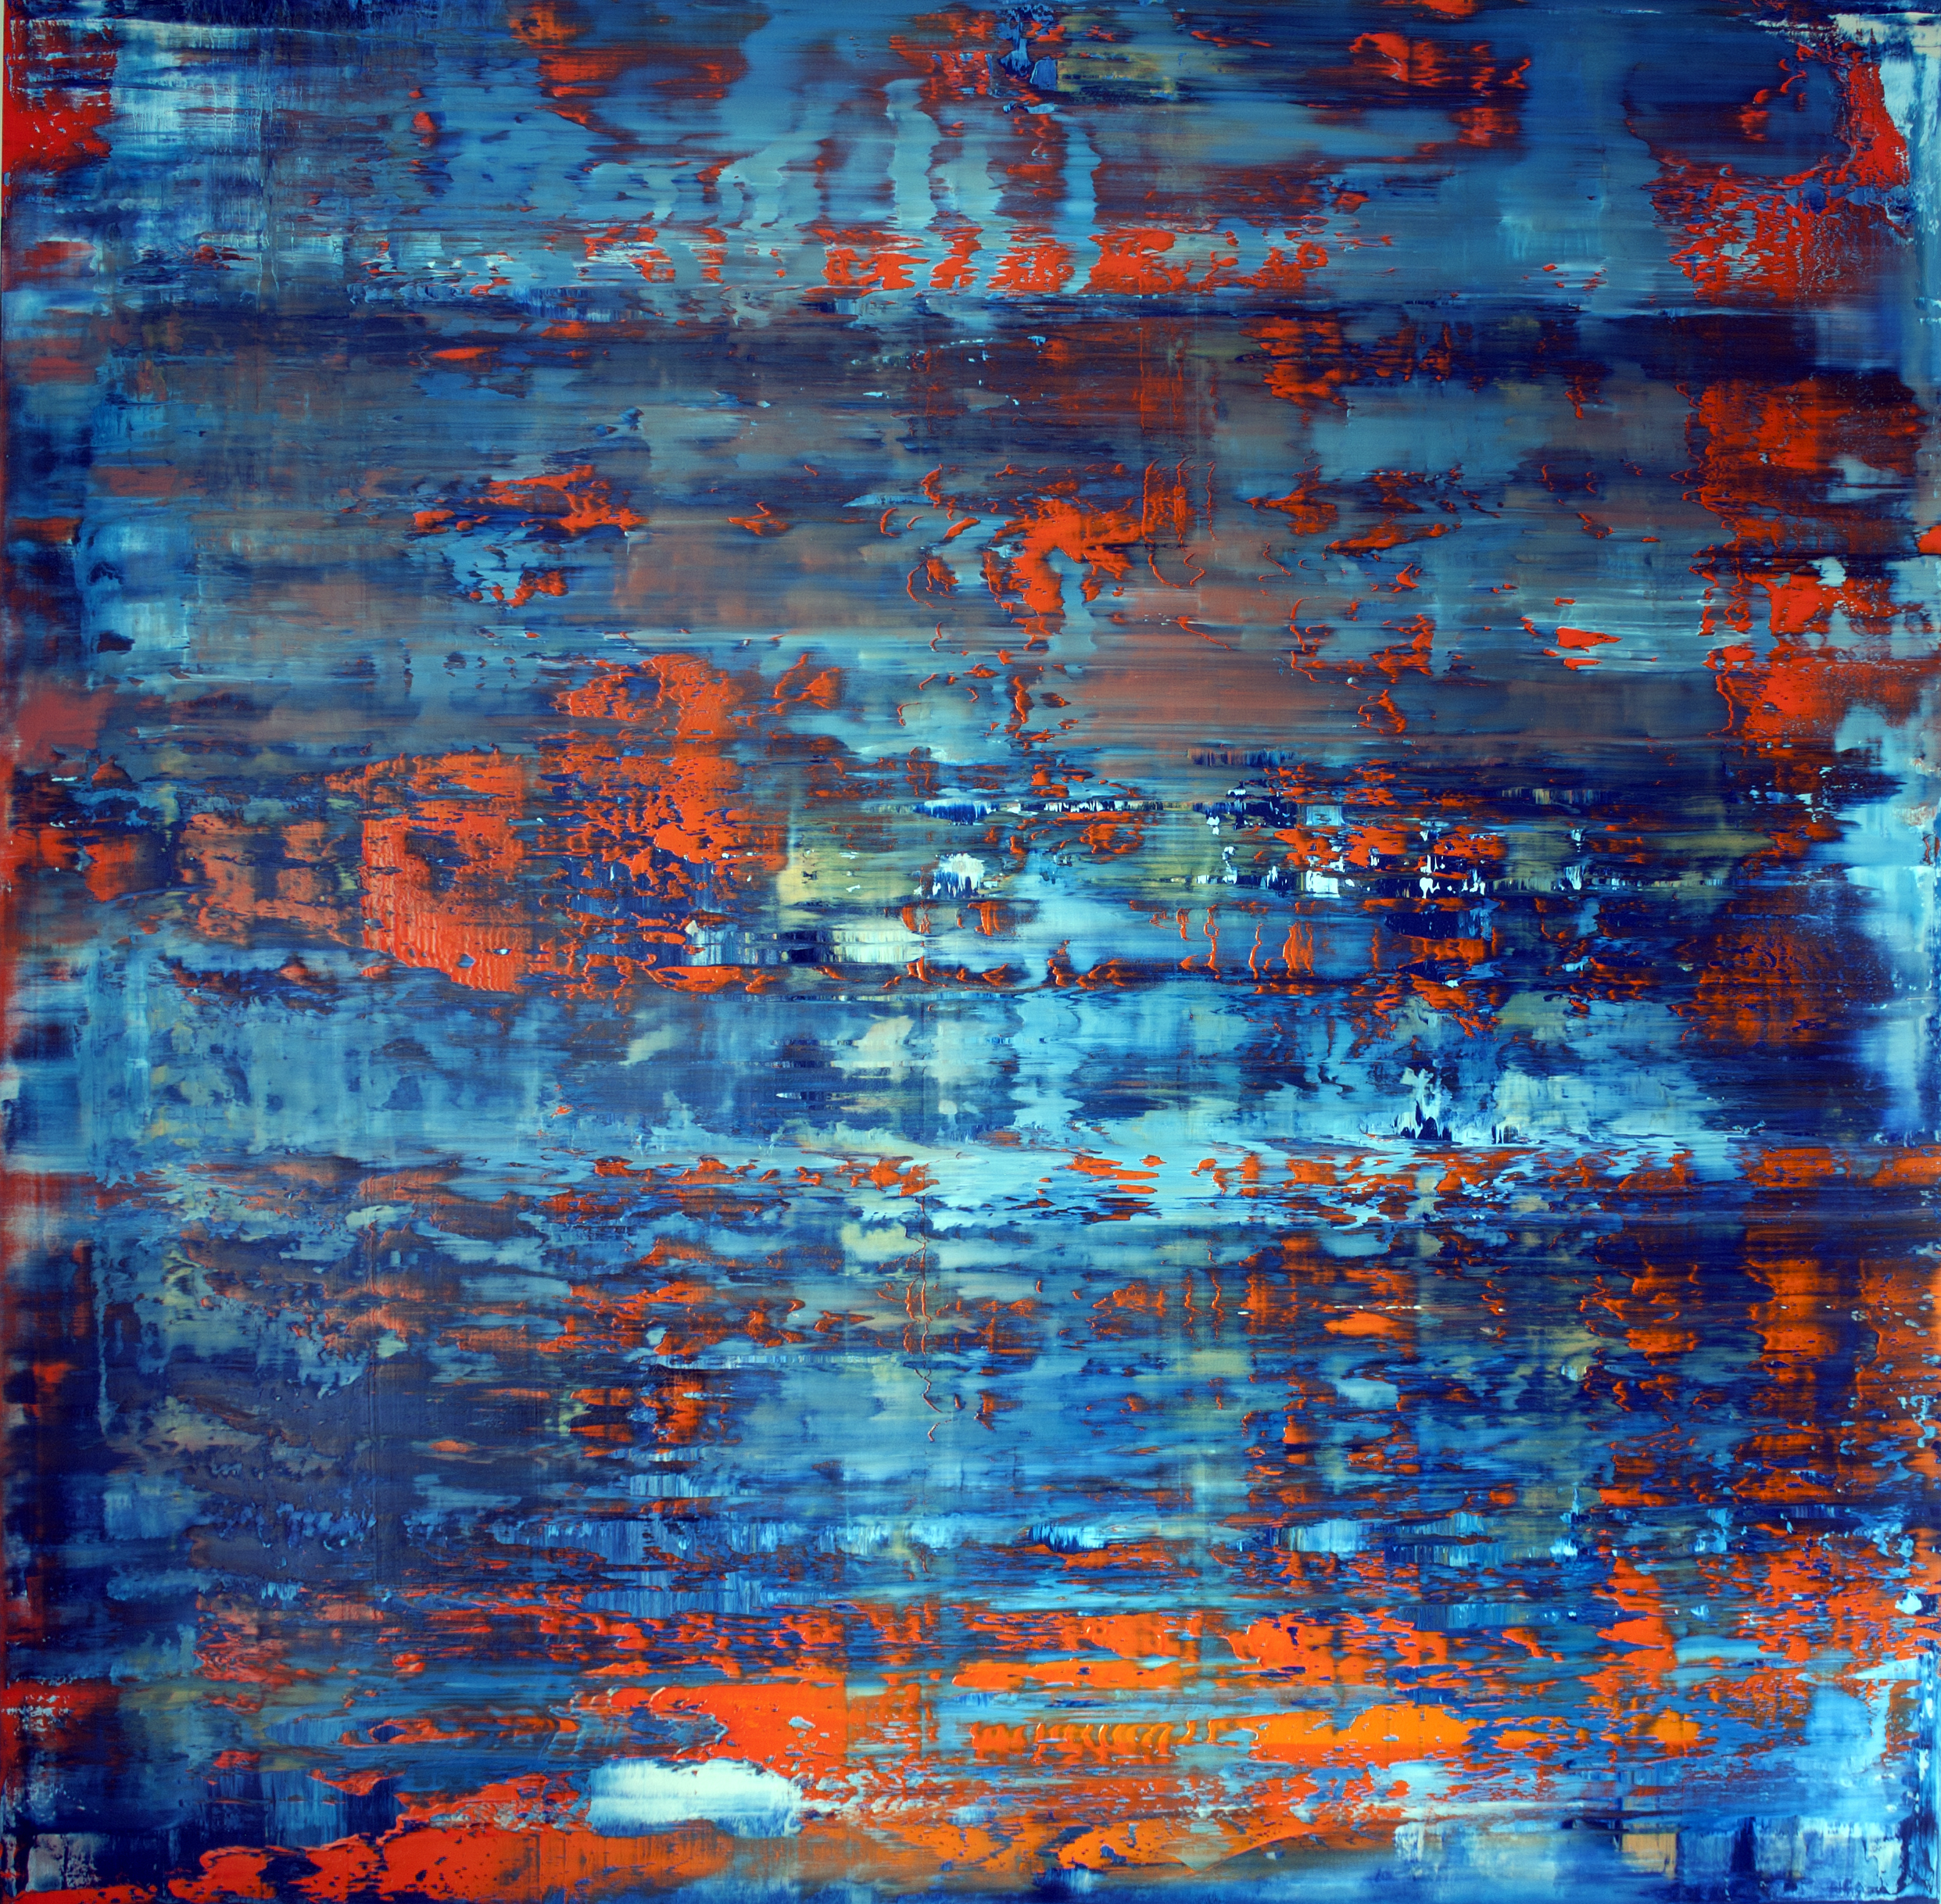 The Blue Hour   Oil on canvas 150cm x 150cm x 4.6cm © Anthony Wigglesworth - All Rights Reserved nception Gallery, Paris